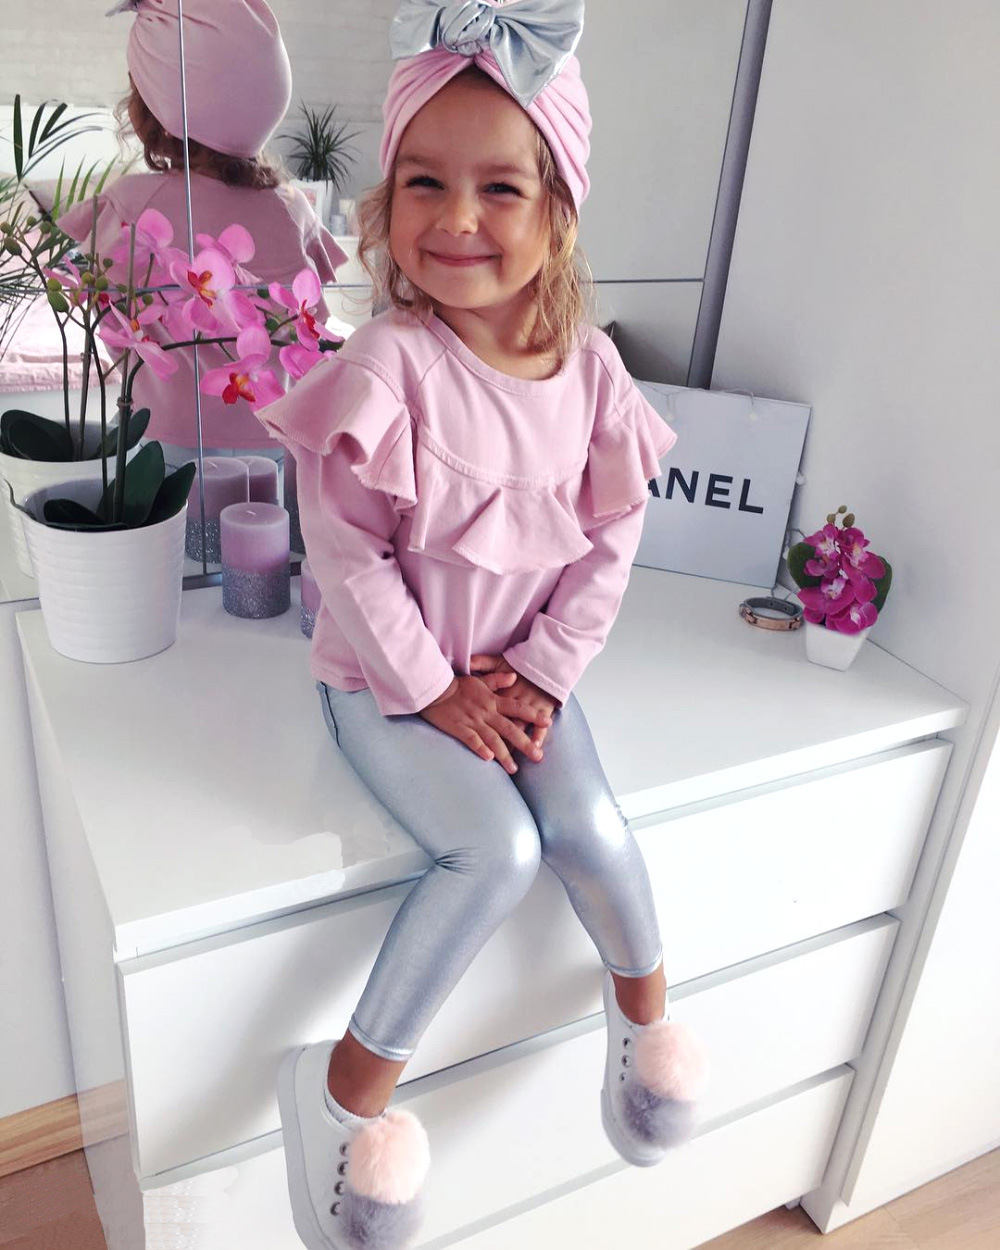 3Pcs Baby Girl Clothing Set Long Sleeve Ruffles Pink Top+ Silver Leather Leggings Pants +Bow Hat Outfits Kids Clothes Set